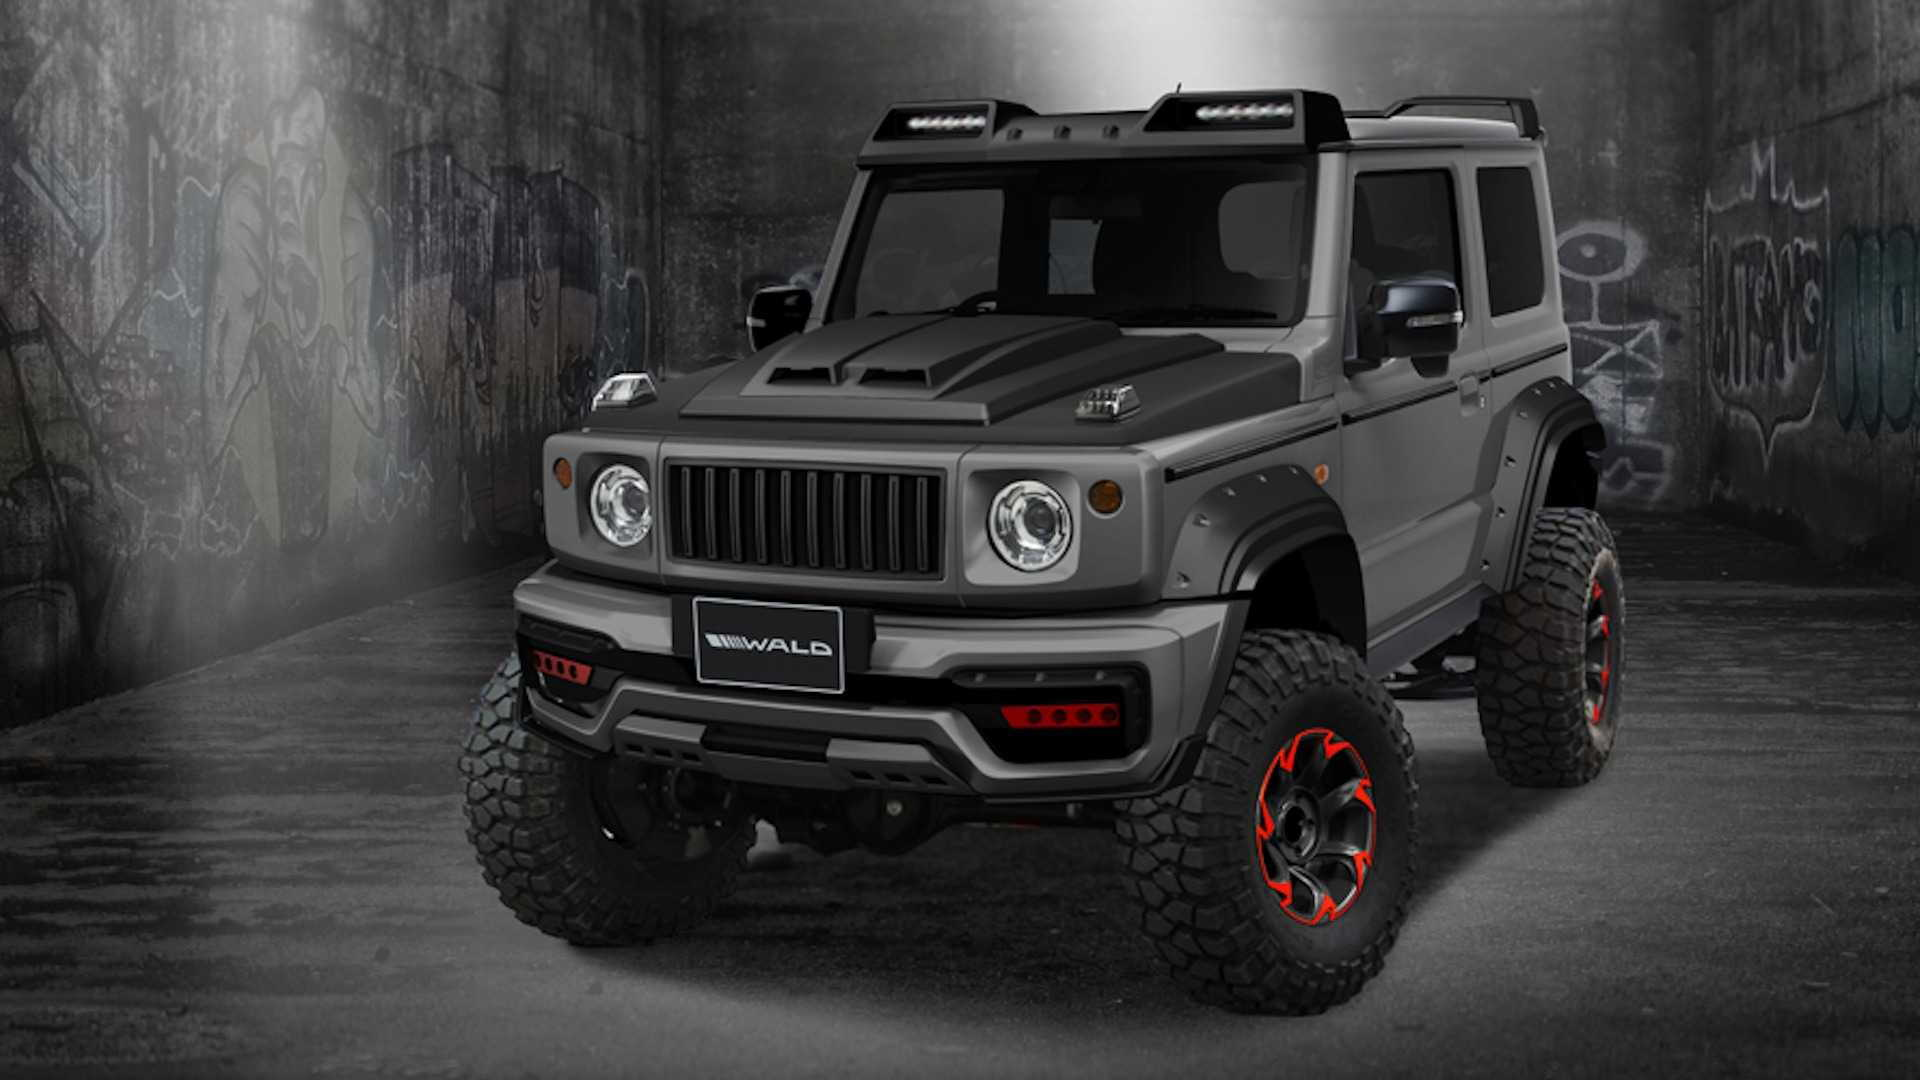 Suzuki Jimny Black Bison edition from Wald International